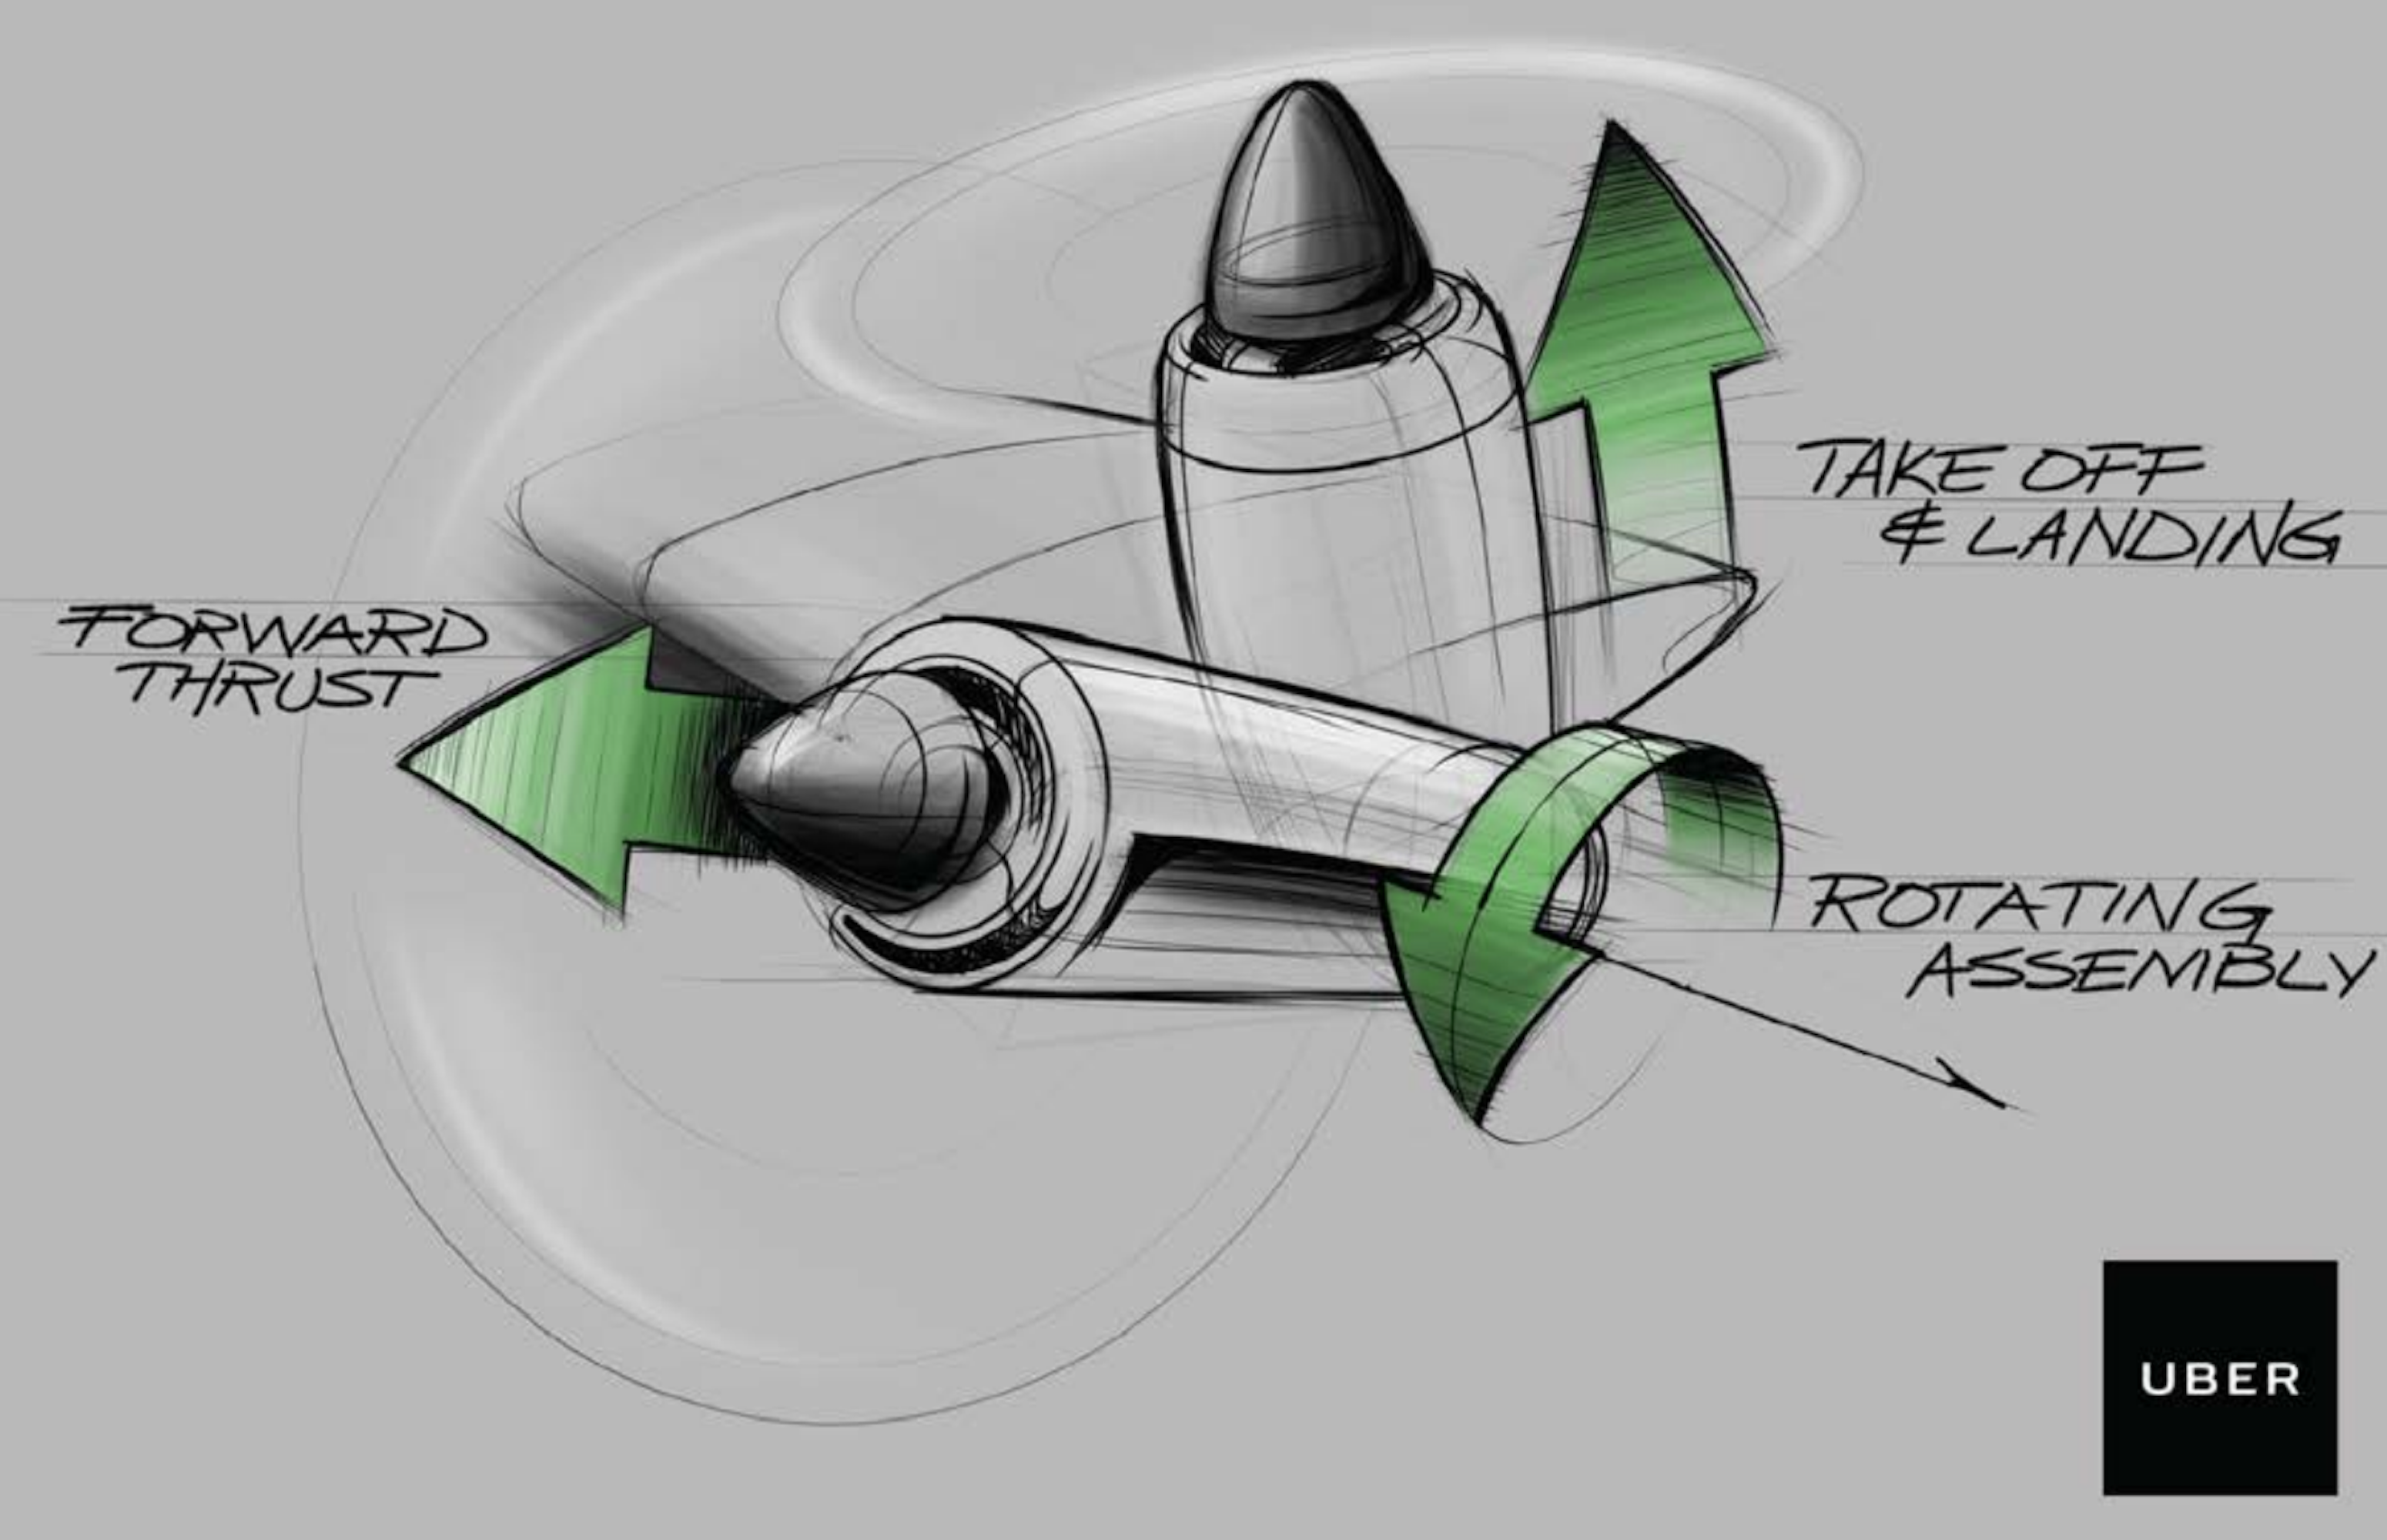 The VTOL design will allow for easy switching between takeoff, landing, and cruise modes.